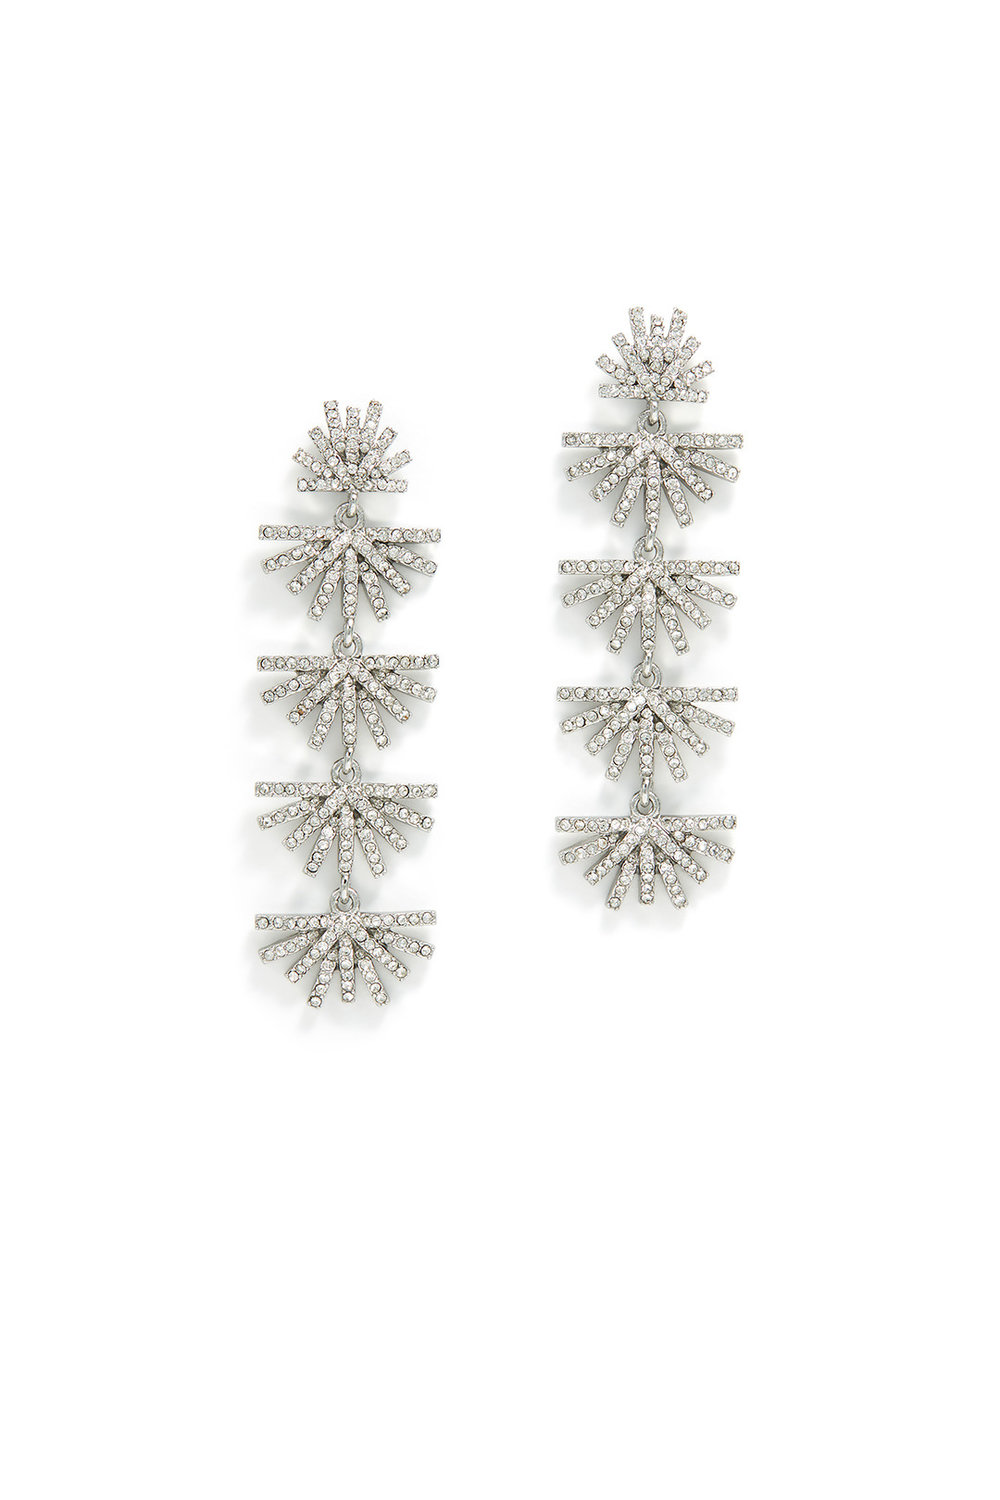 Lele Sadoughi Crystal Palm Grass Earrings - These look like snowflakes but in earring form